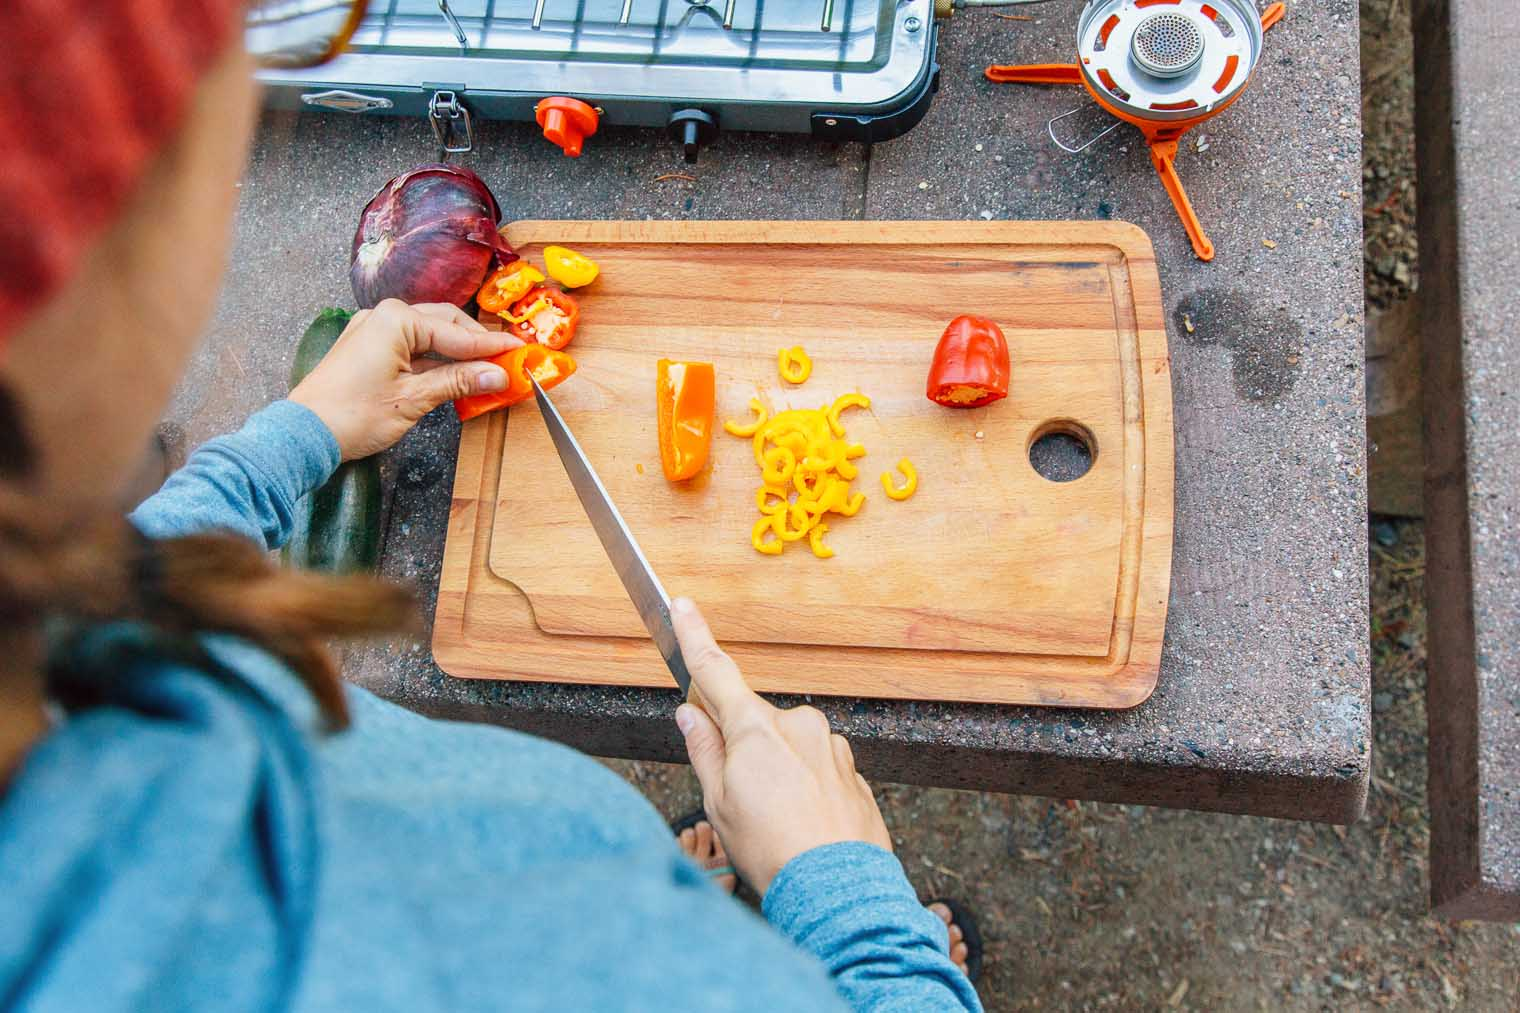 Megan chopping bell peppers on a wooden cutting board